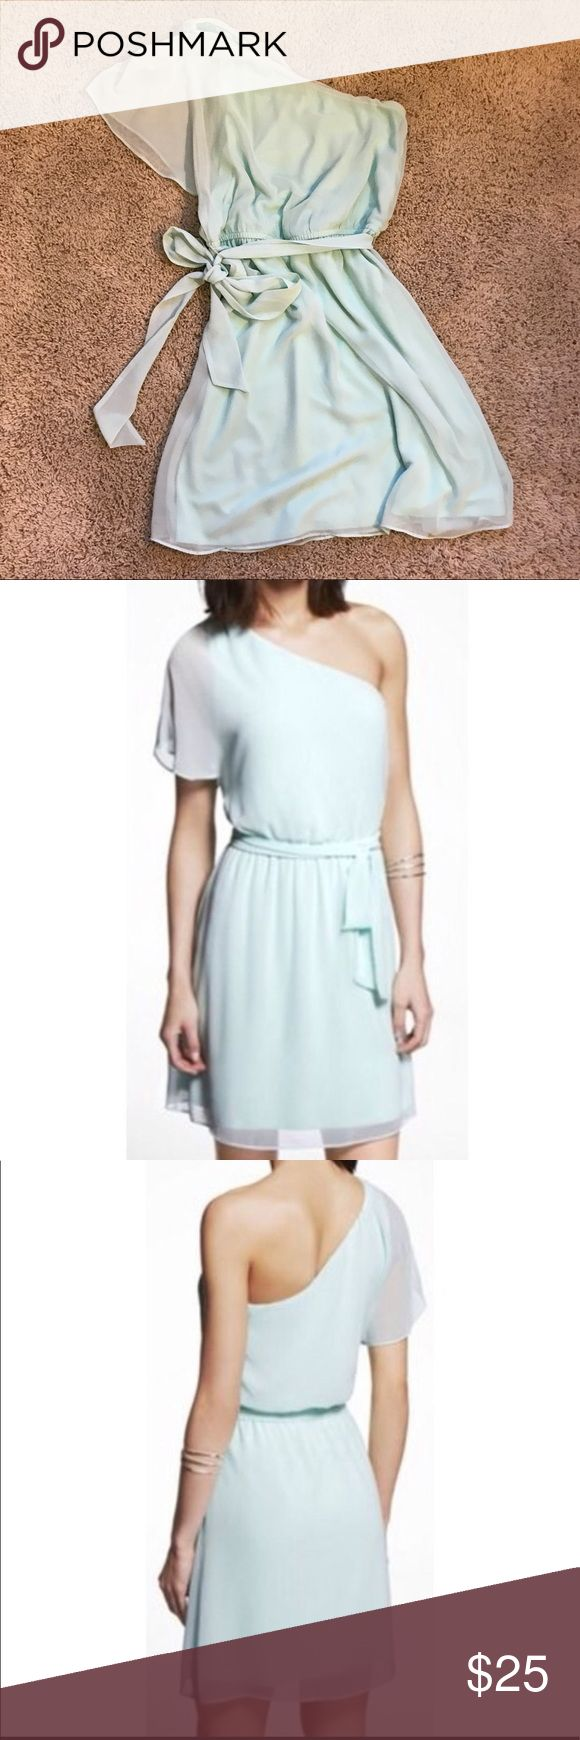 Mint green one shoulder chiffon dress Wore only a couple of hours for a wedding. Flowy chiffon dress with a removable tie around the cinched waist. Express Dresses One Shoulder